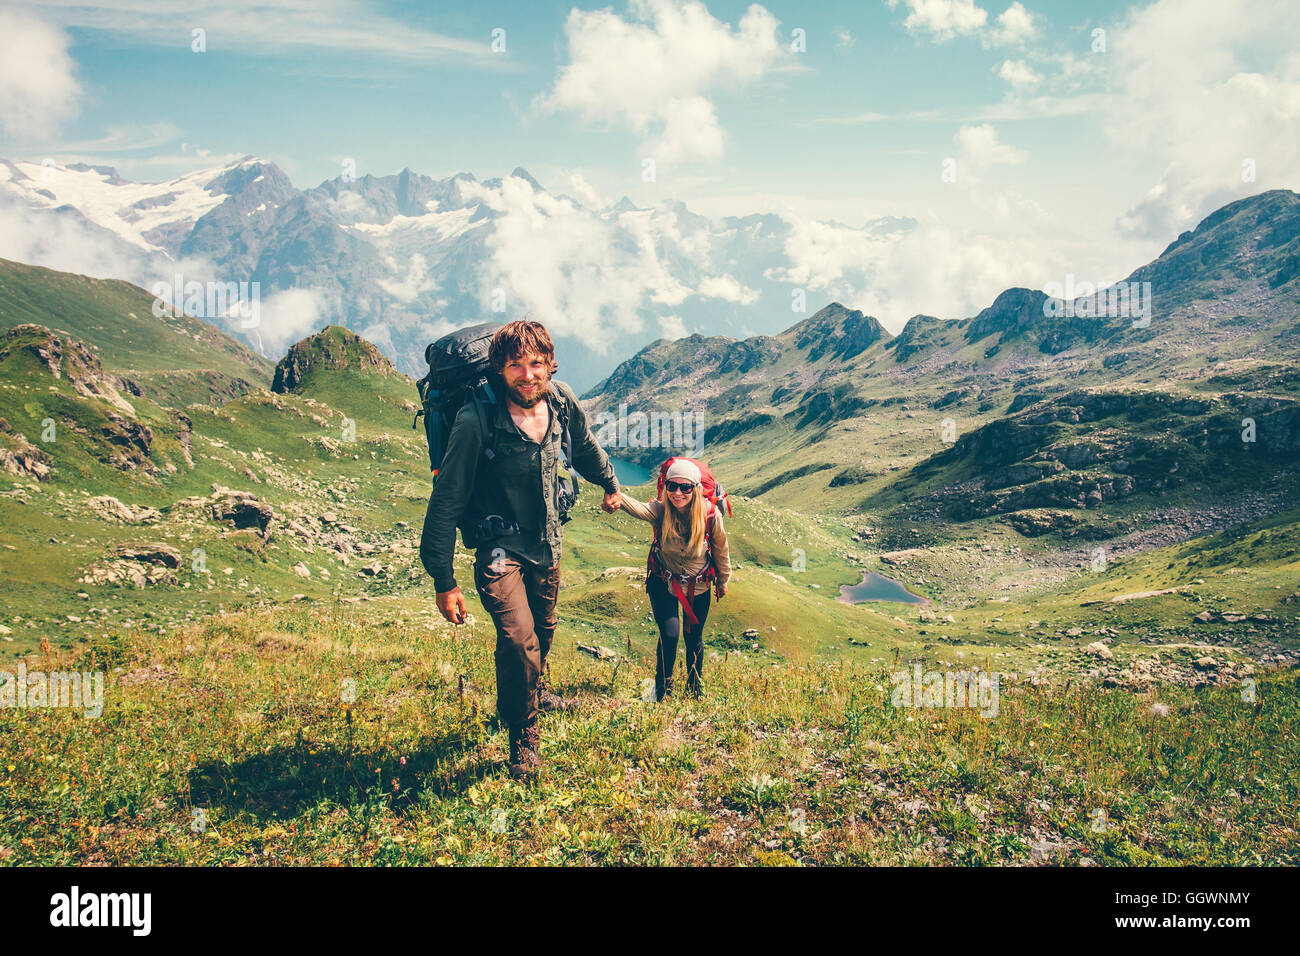 Happy romantic Couple Man and Woman Travelers with backpack holding hands mountaineering Travel Lifestyle and relationship - Stock Image